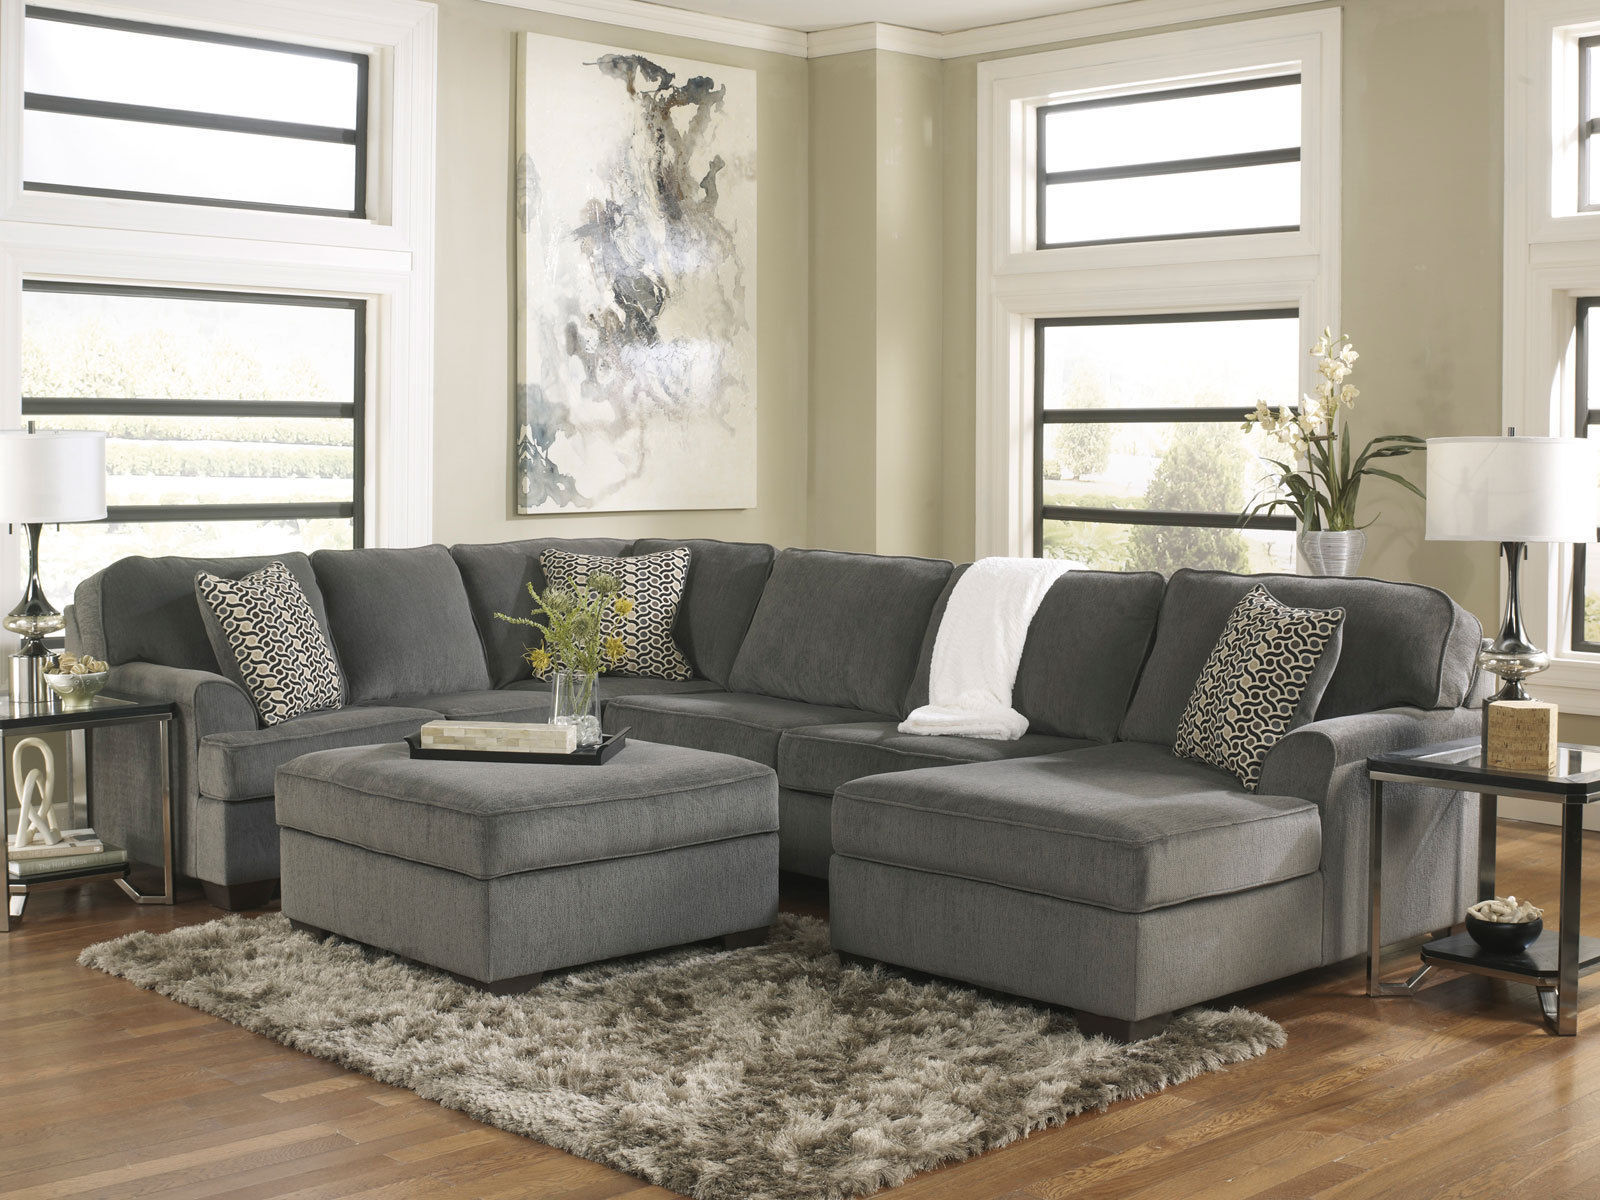 Sole oversized modern gray fabric sofa couch sectional set for Modern living room furniture